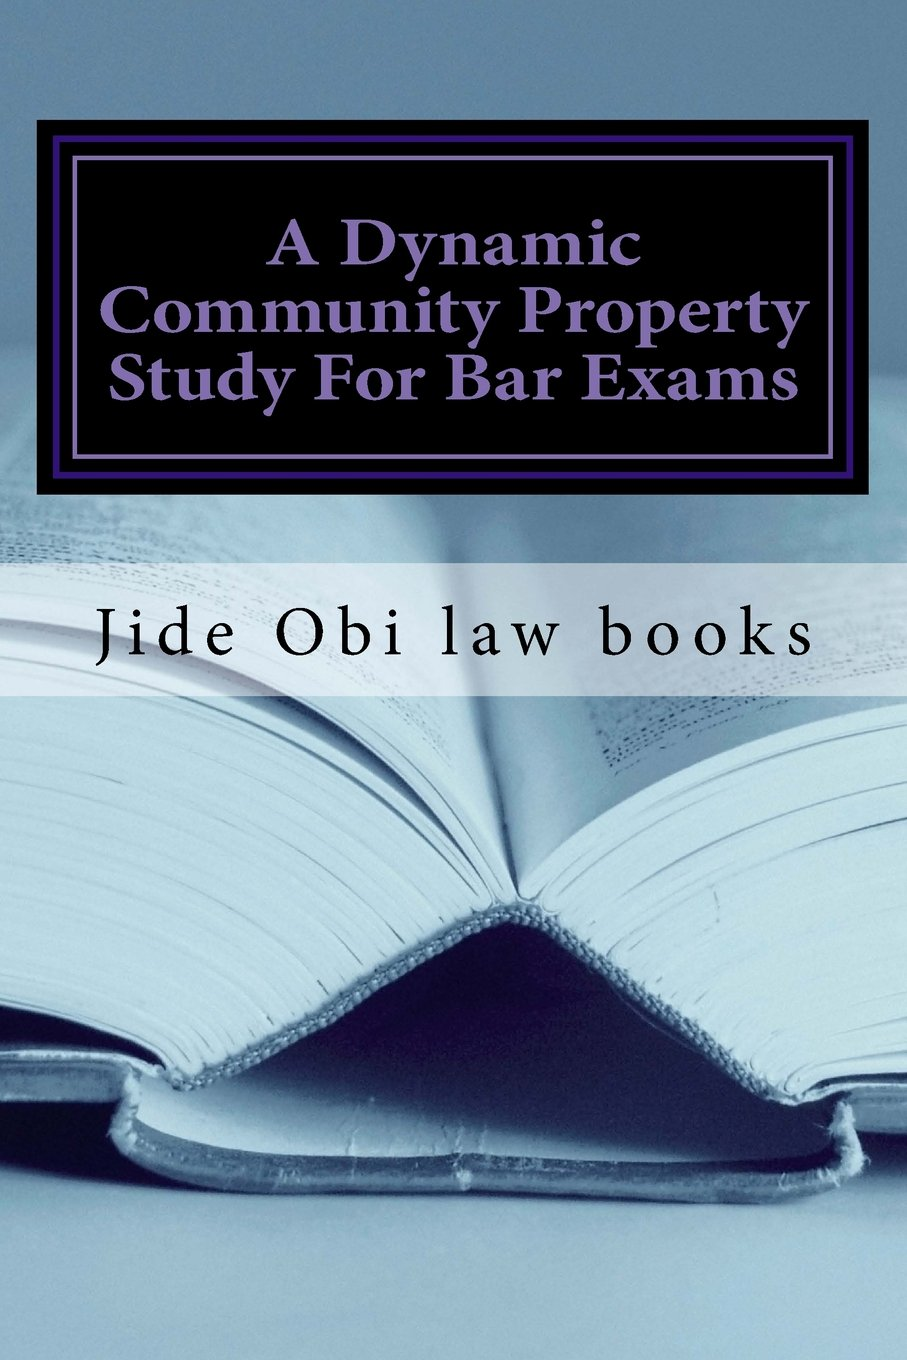 Download A Dynamic Community Property Study For Bar Exams: Beautifully covers Pereira and Van Camp as well as reverse Pereira and reverse Van Camp - the two California Community Property law issues ebook